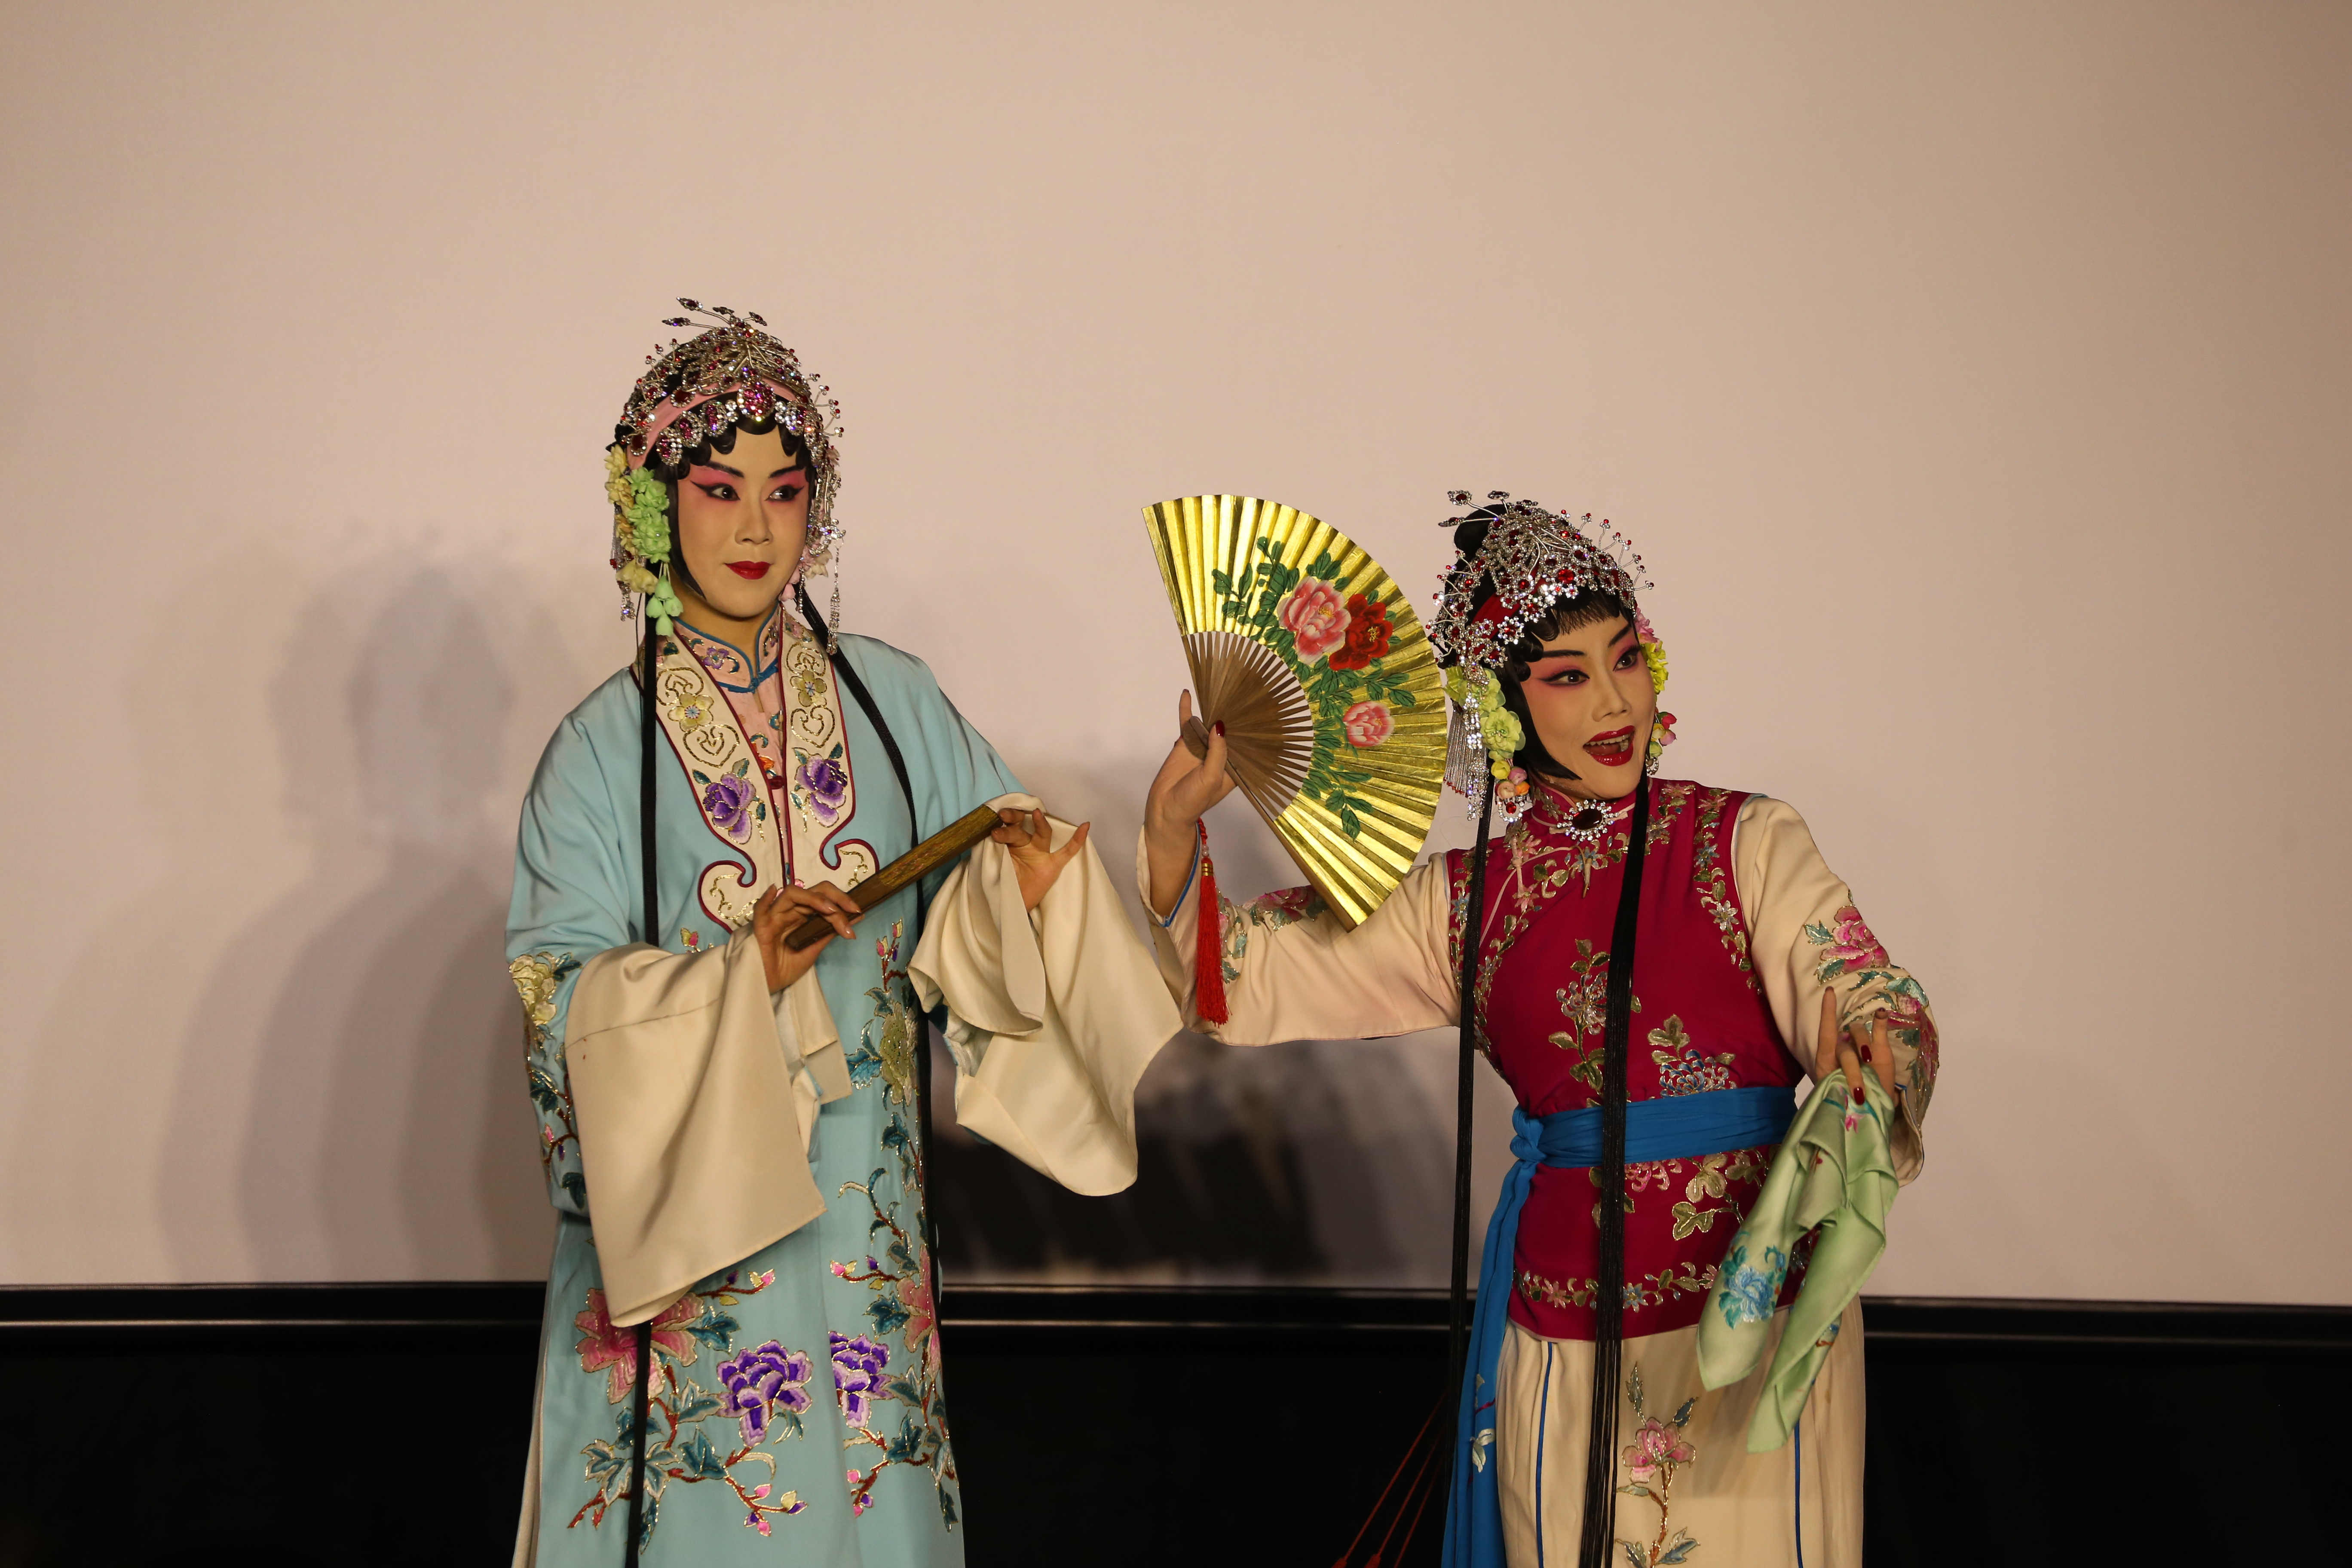 SUSTech welcomes Peking Opera masters to campus